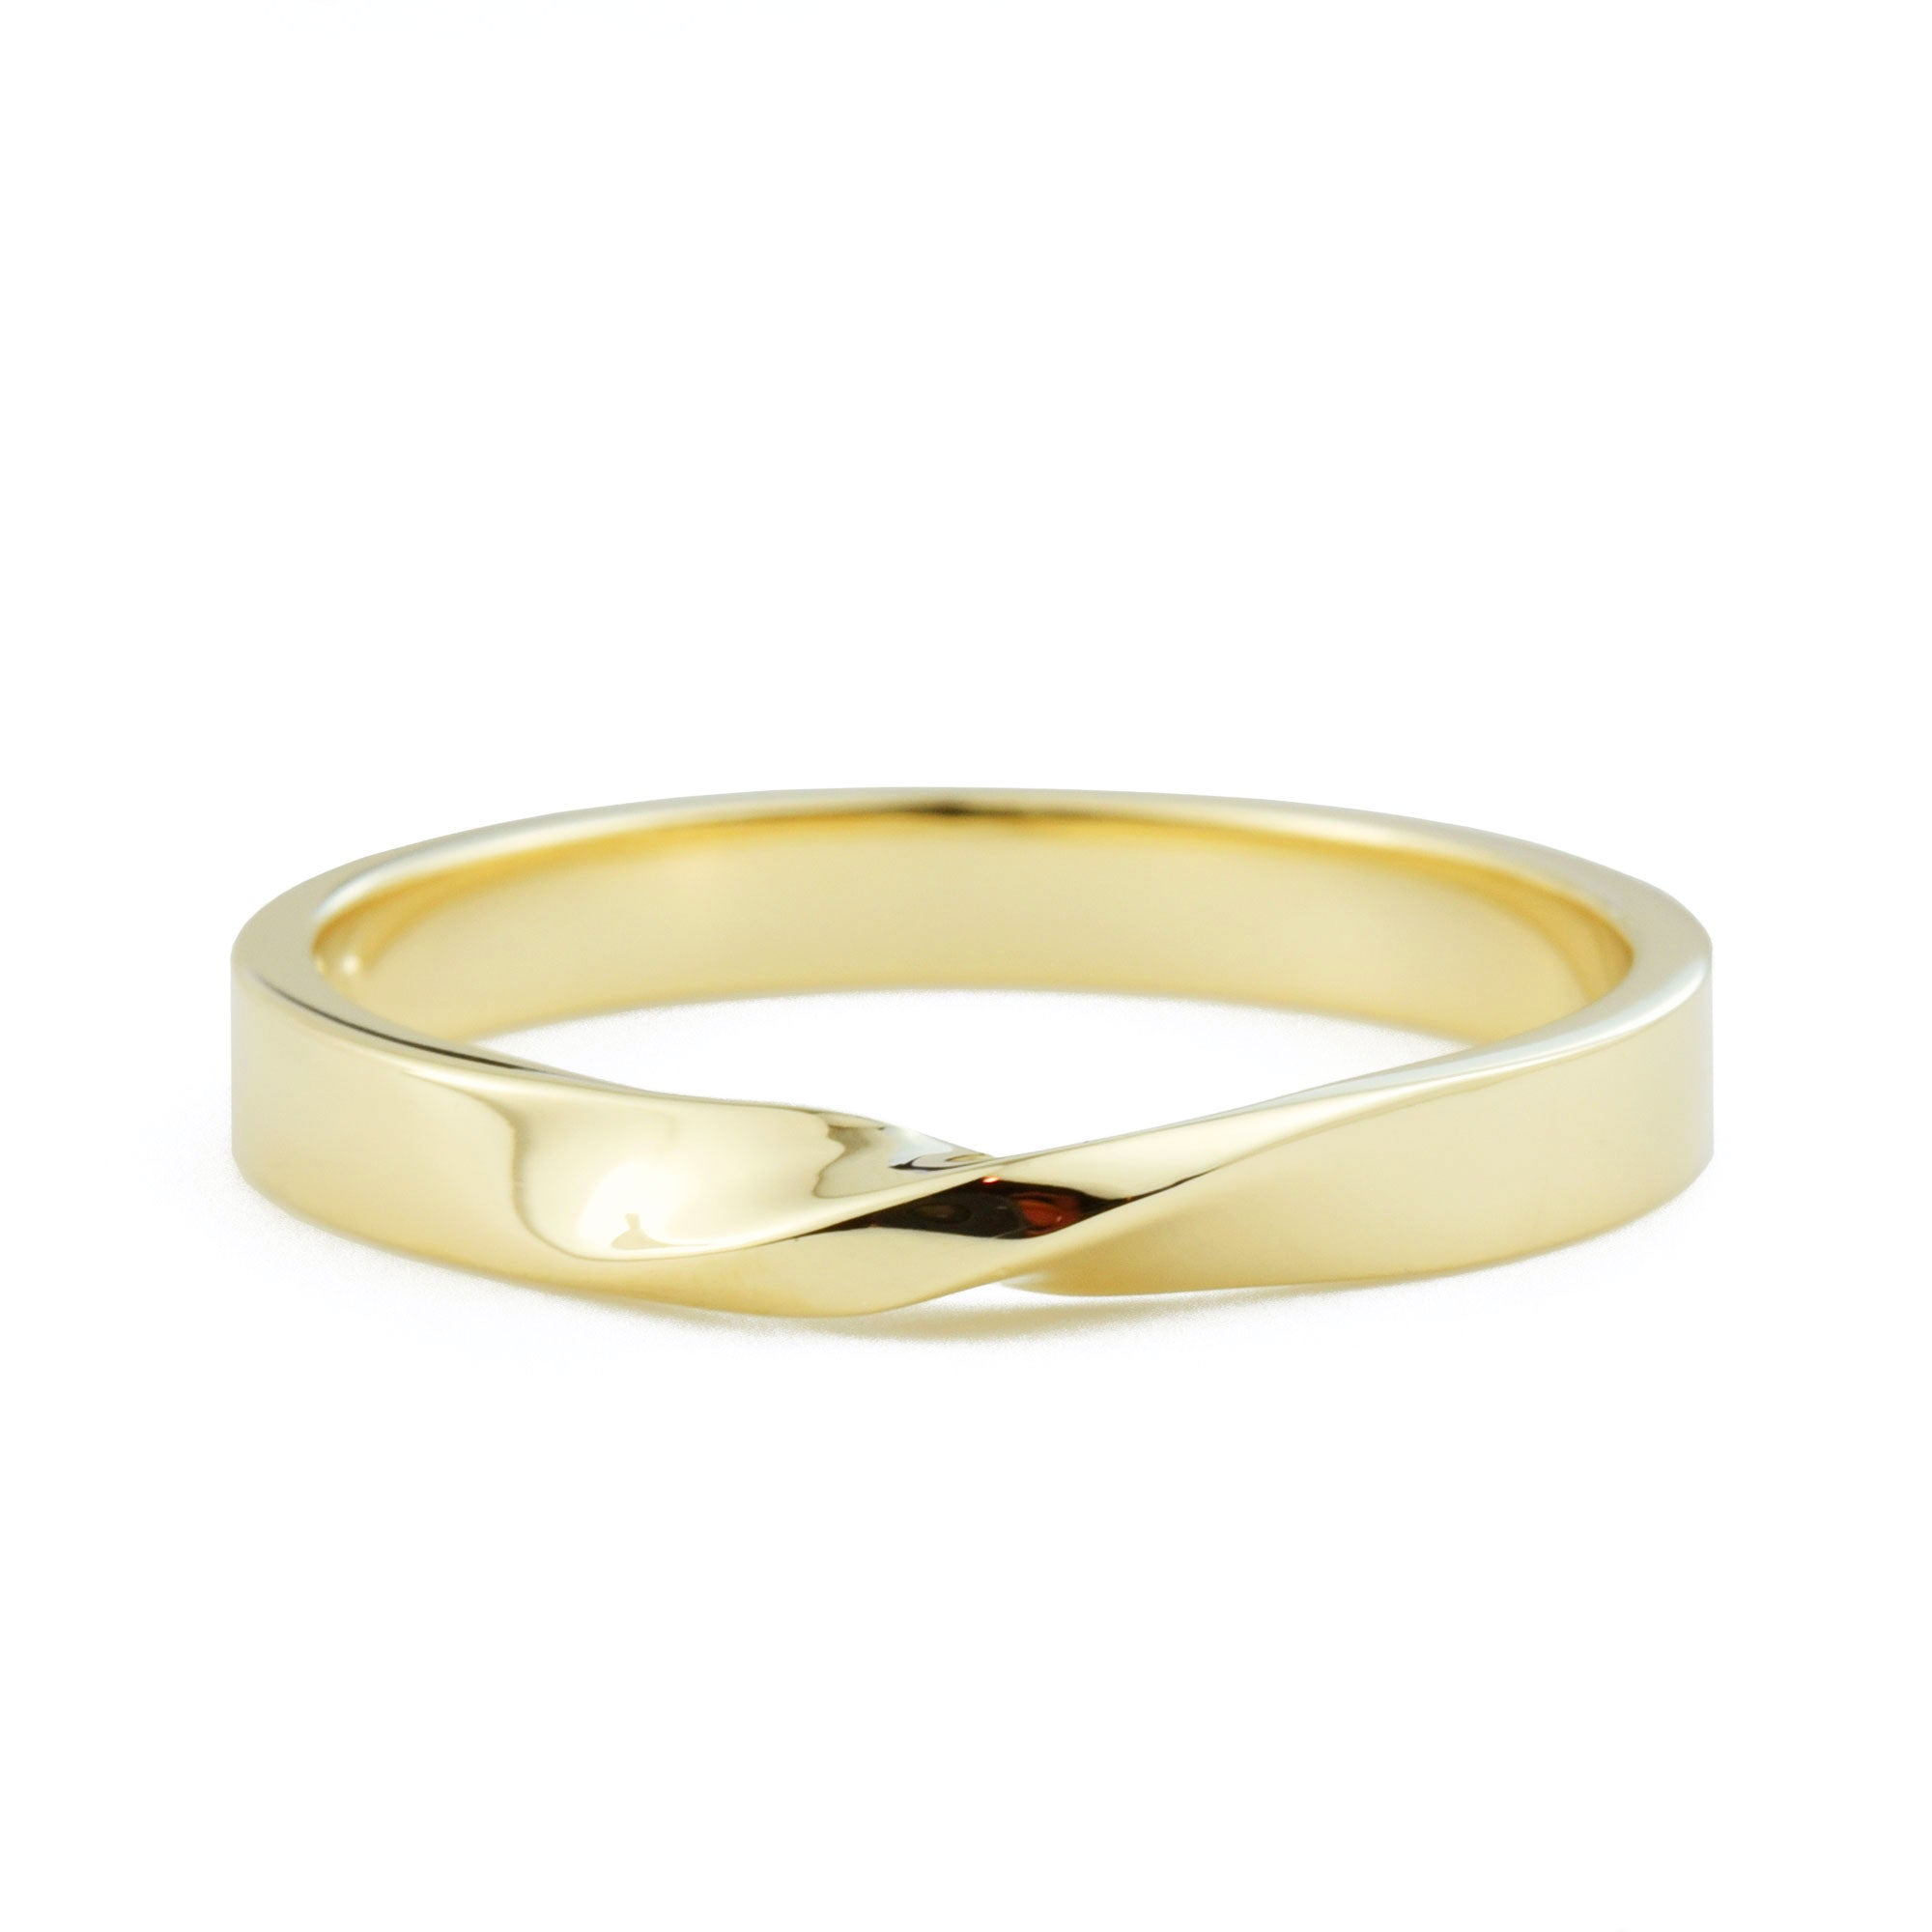 Slender Mobius Band in yellow gold